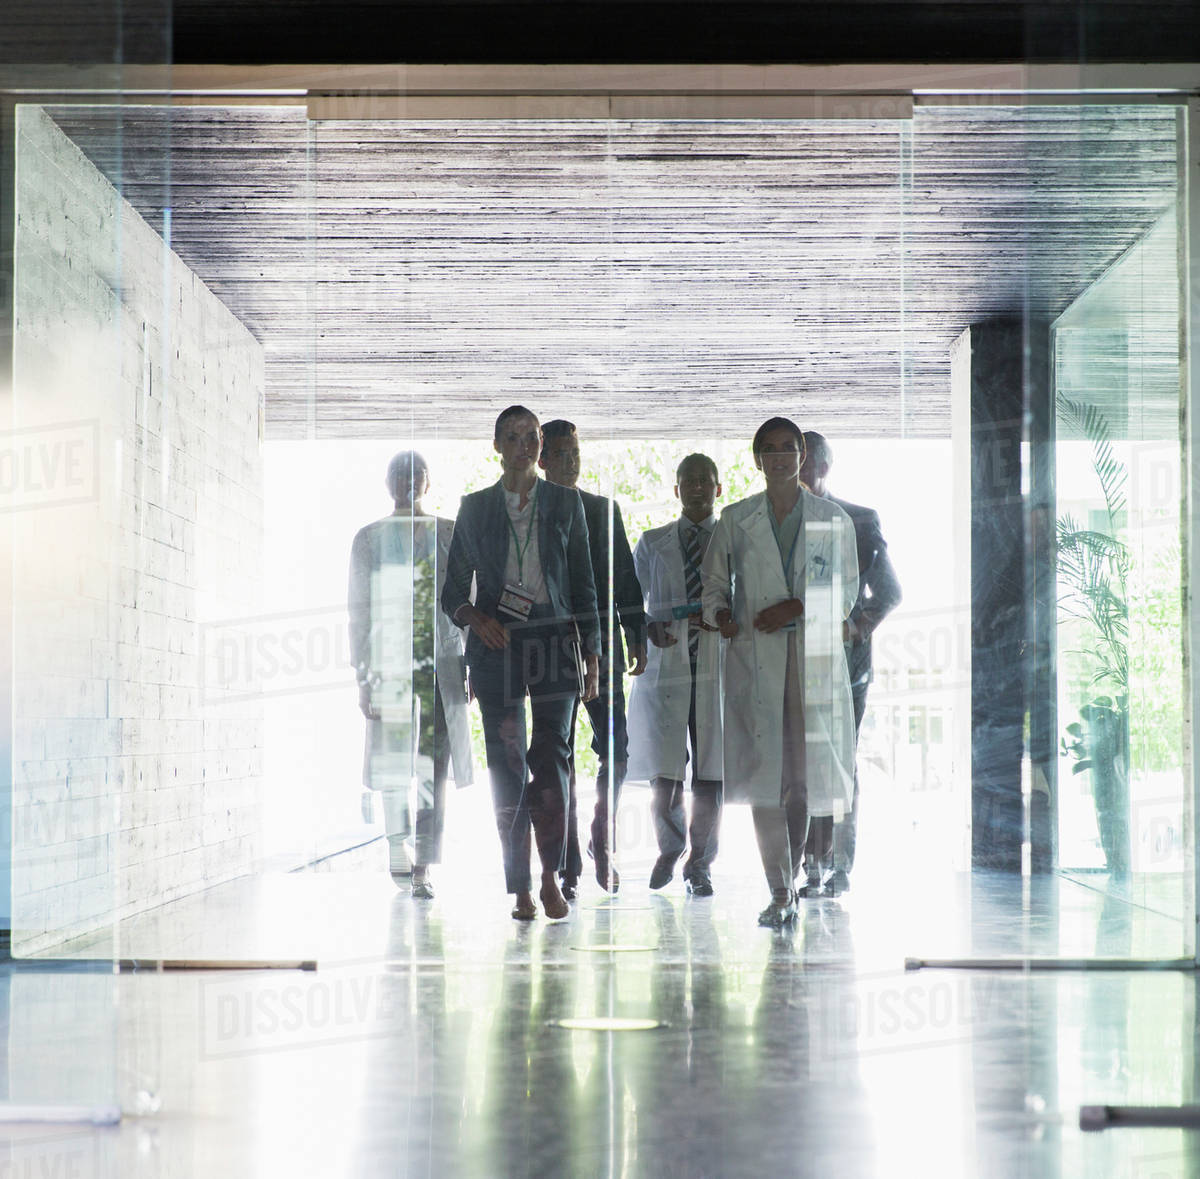 Scientists and business people approaching glass doors Royalty-free stock photo